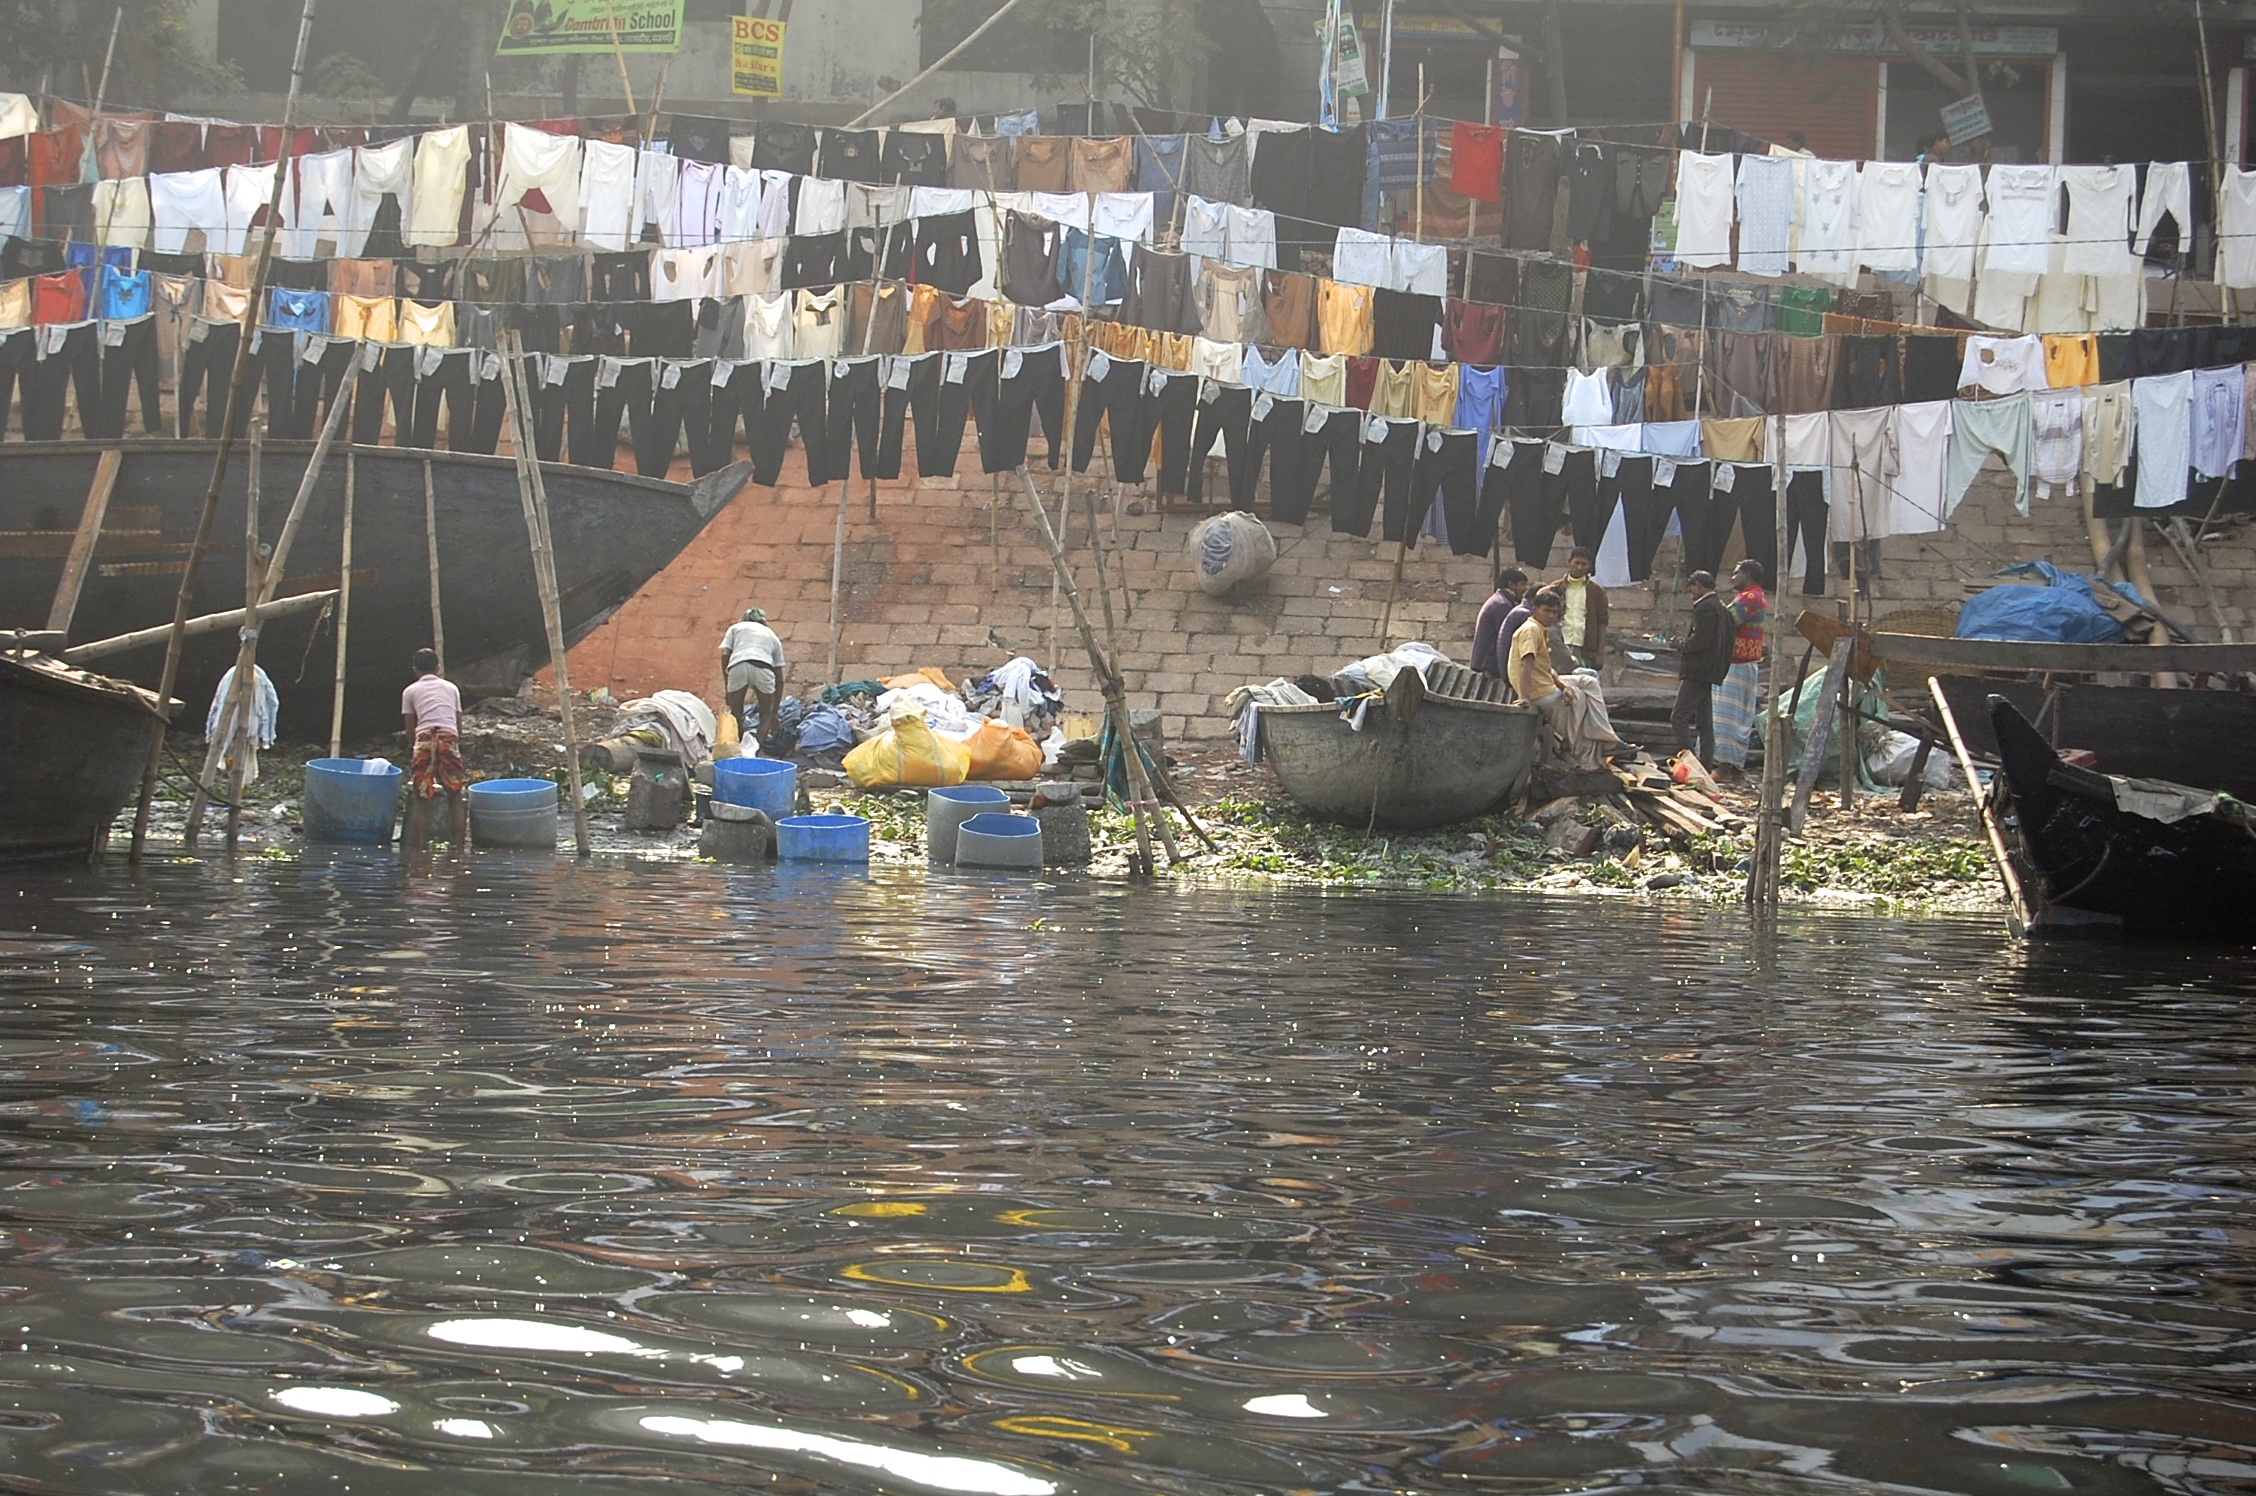 Designer Jeans drying in Dhaka